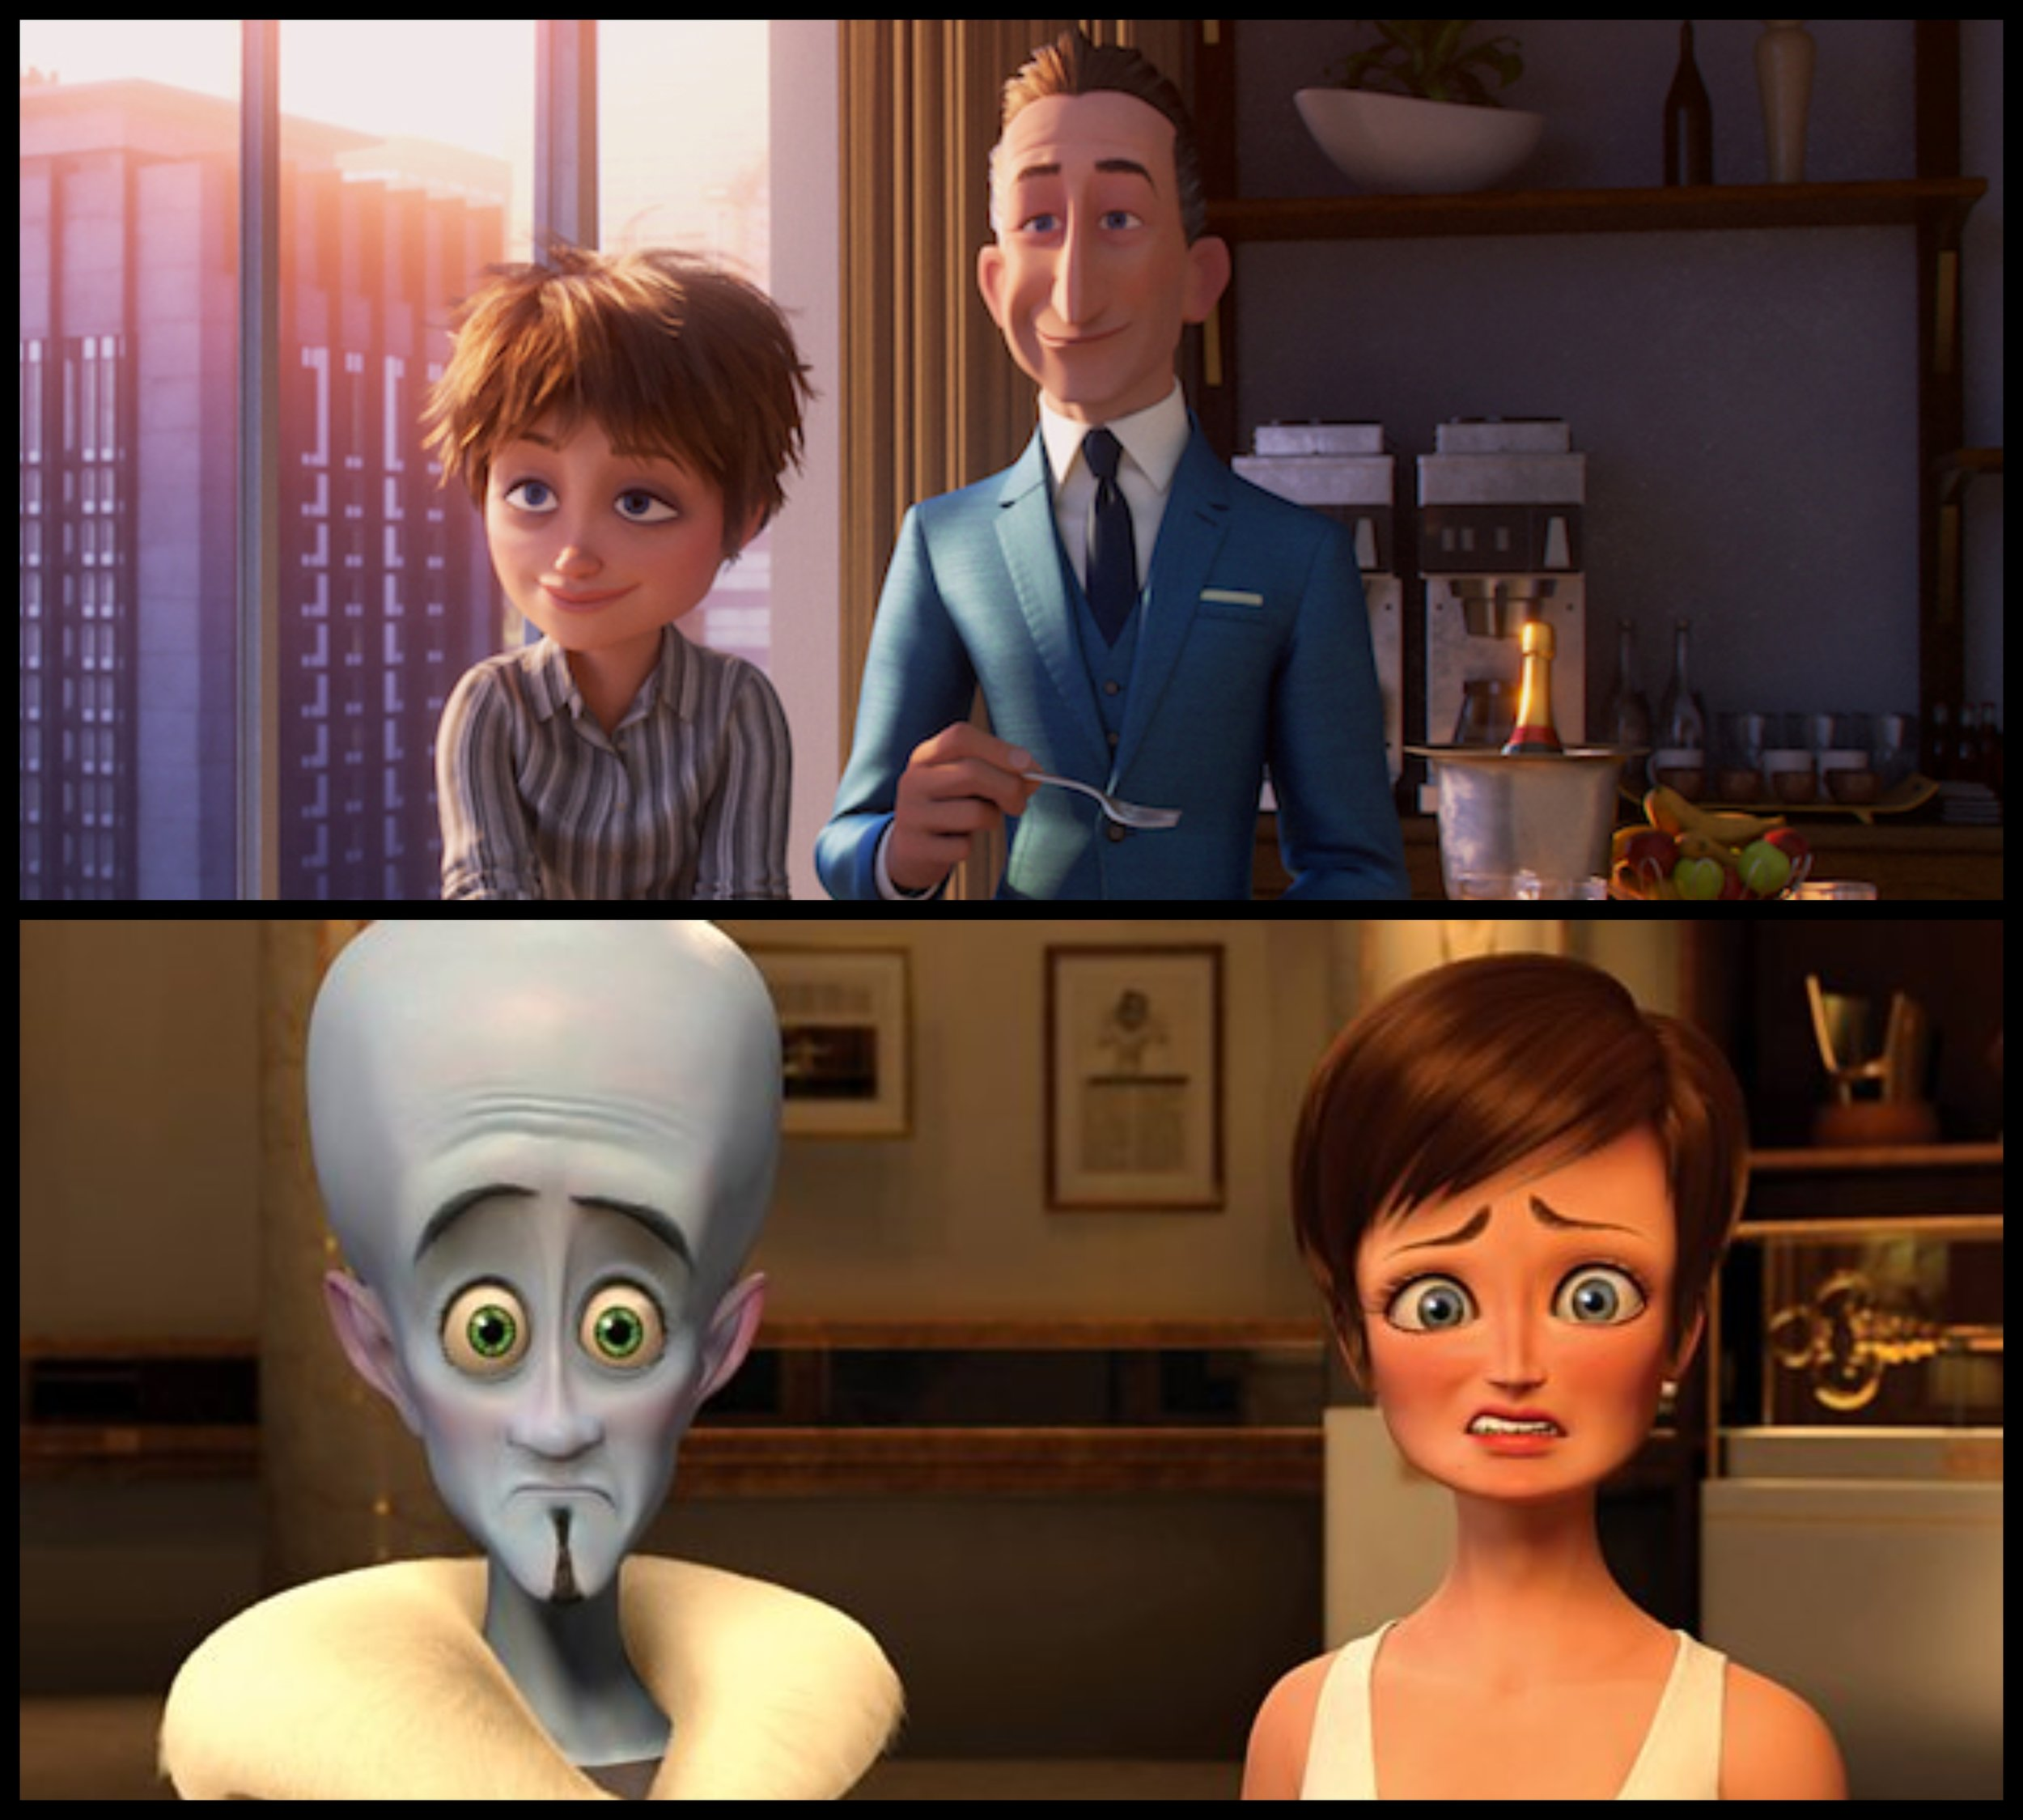 Fig. 4 - Evelyn Deavour and her brother Winston in  Incredibles 2  (top), and (bottom) Megamind and Roxanne Ritchi in DreamWorks'  Megamind  (Tom McGrath, 2010).